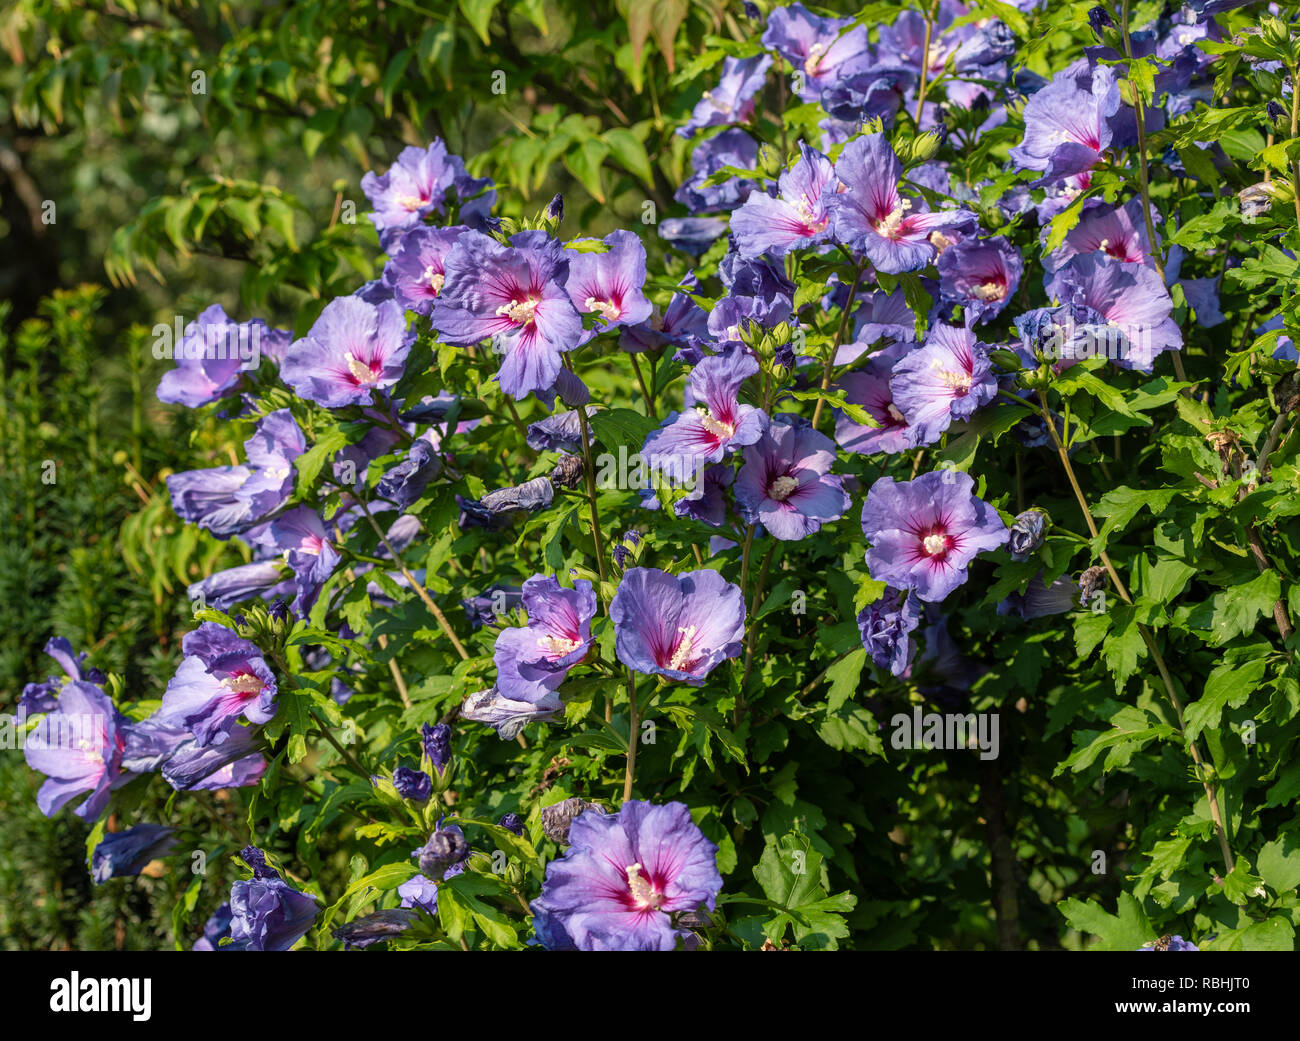 Color Outdoor Natural Floral Close Up Image Of Shrubbush Full Of